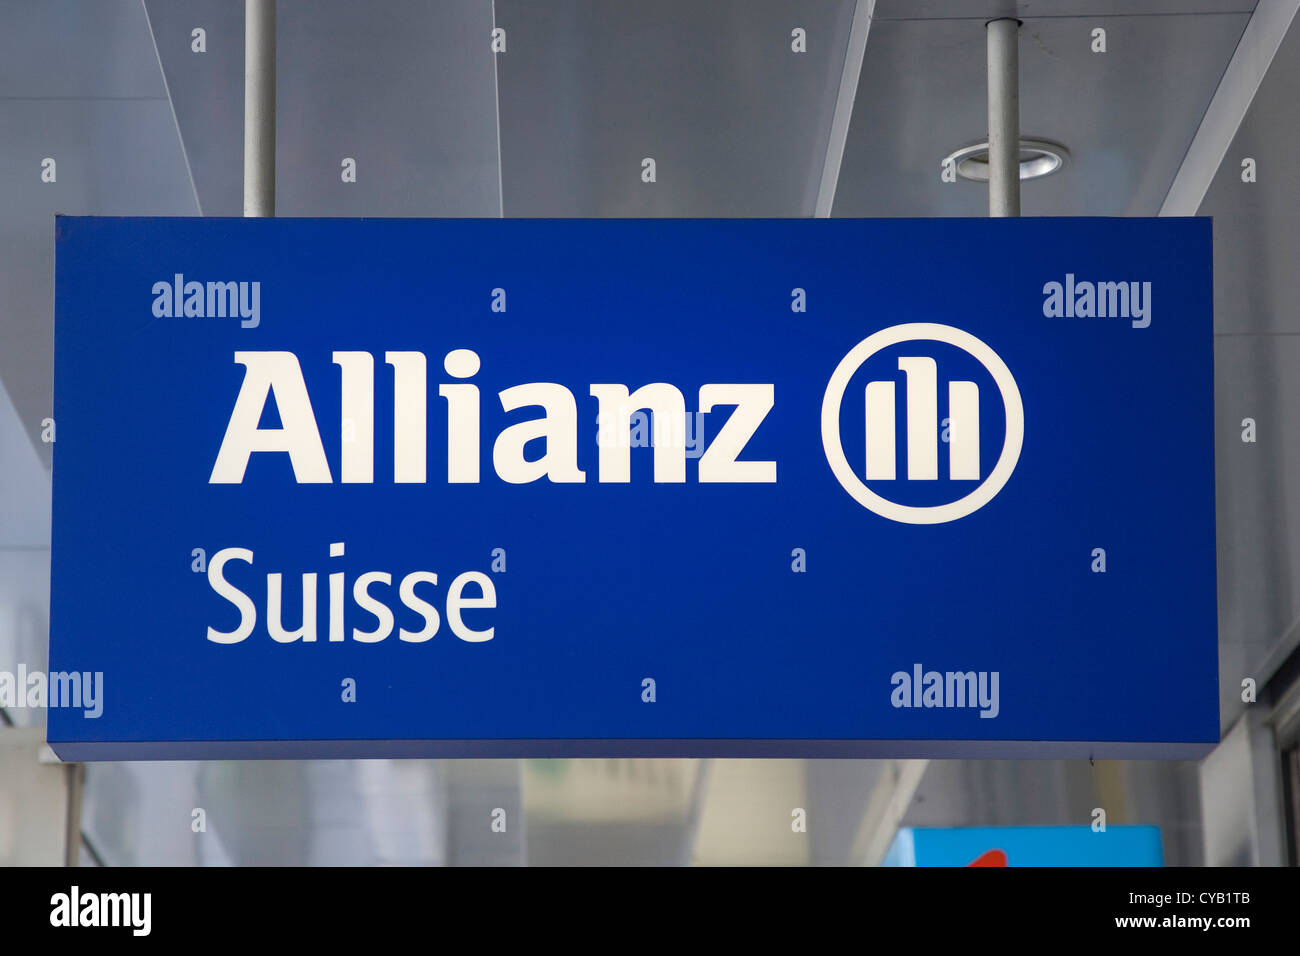 europe, switzerland, zurich, allianz, insurances and financial services - Stock Image